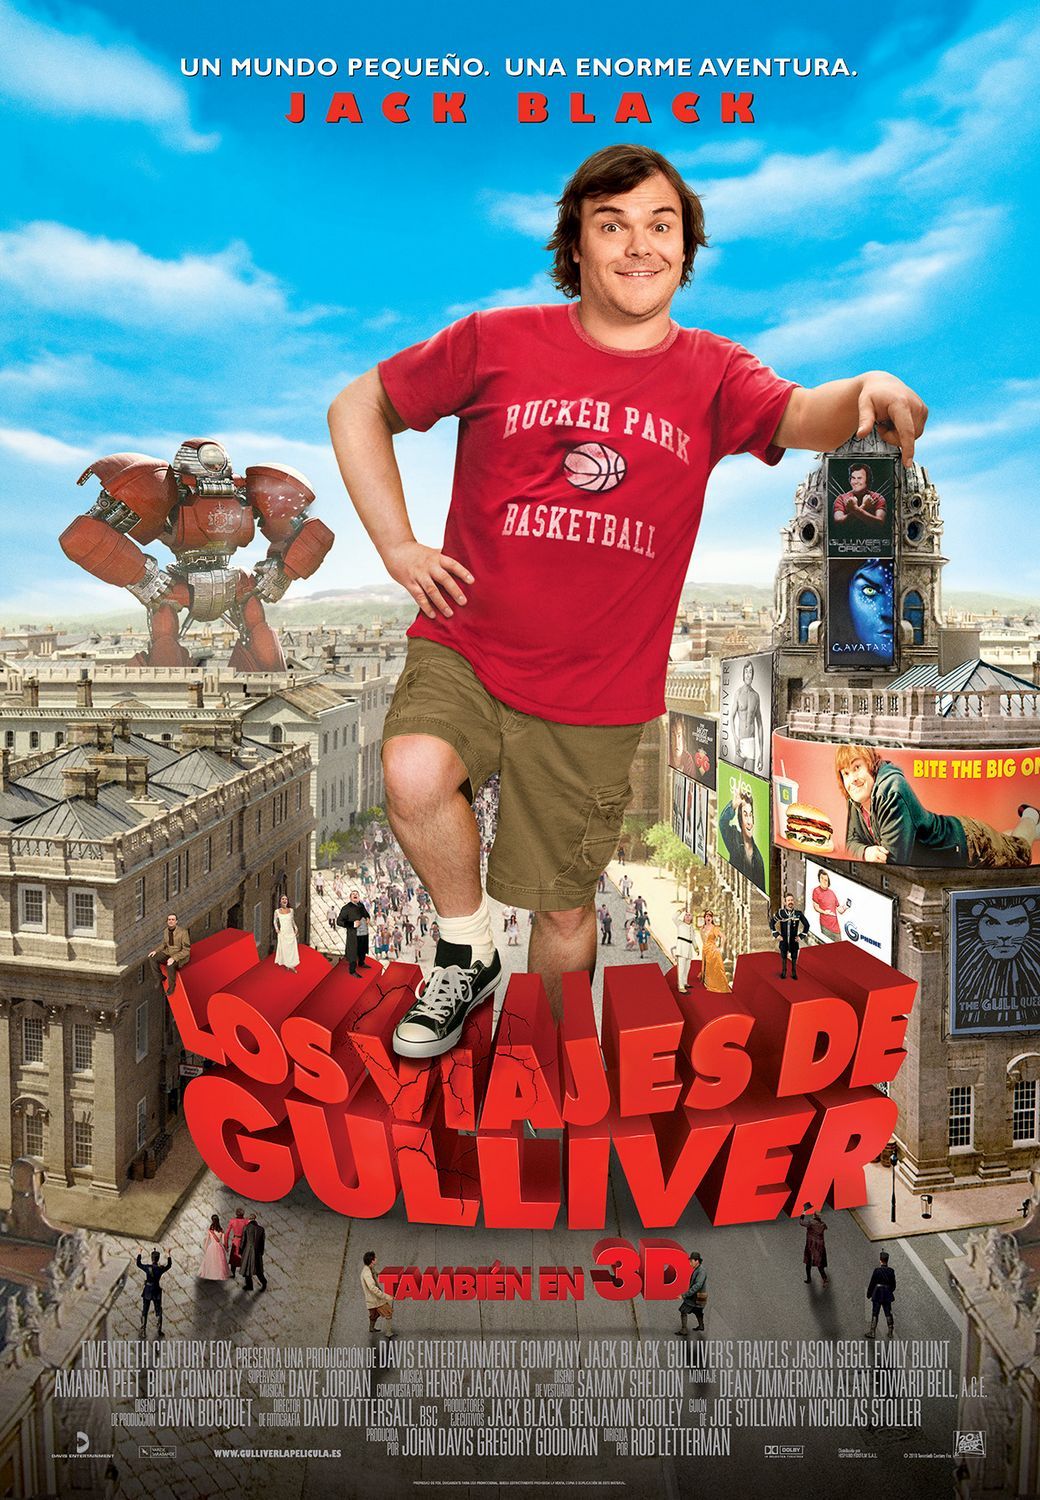 New Gulliver's Travels poster tanks online.